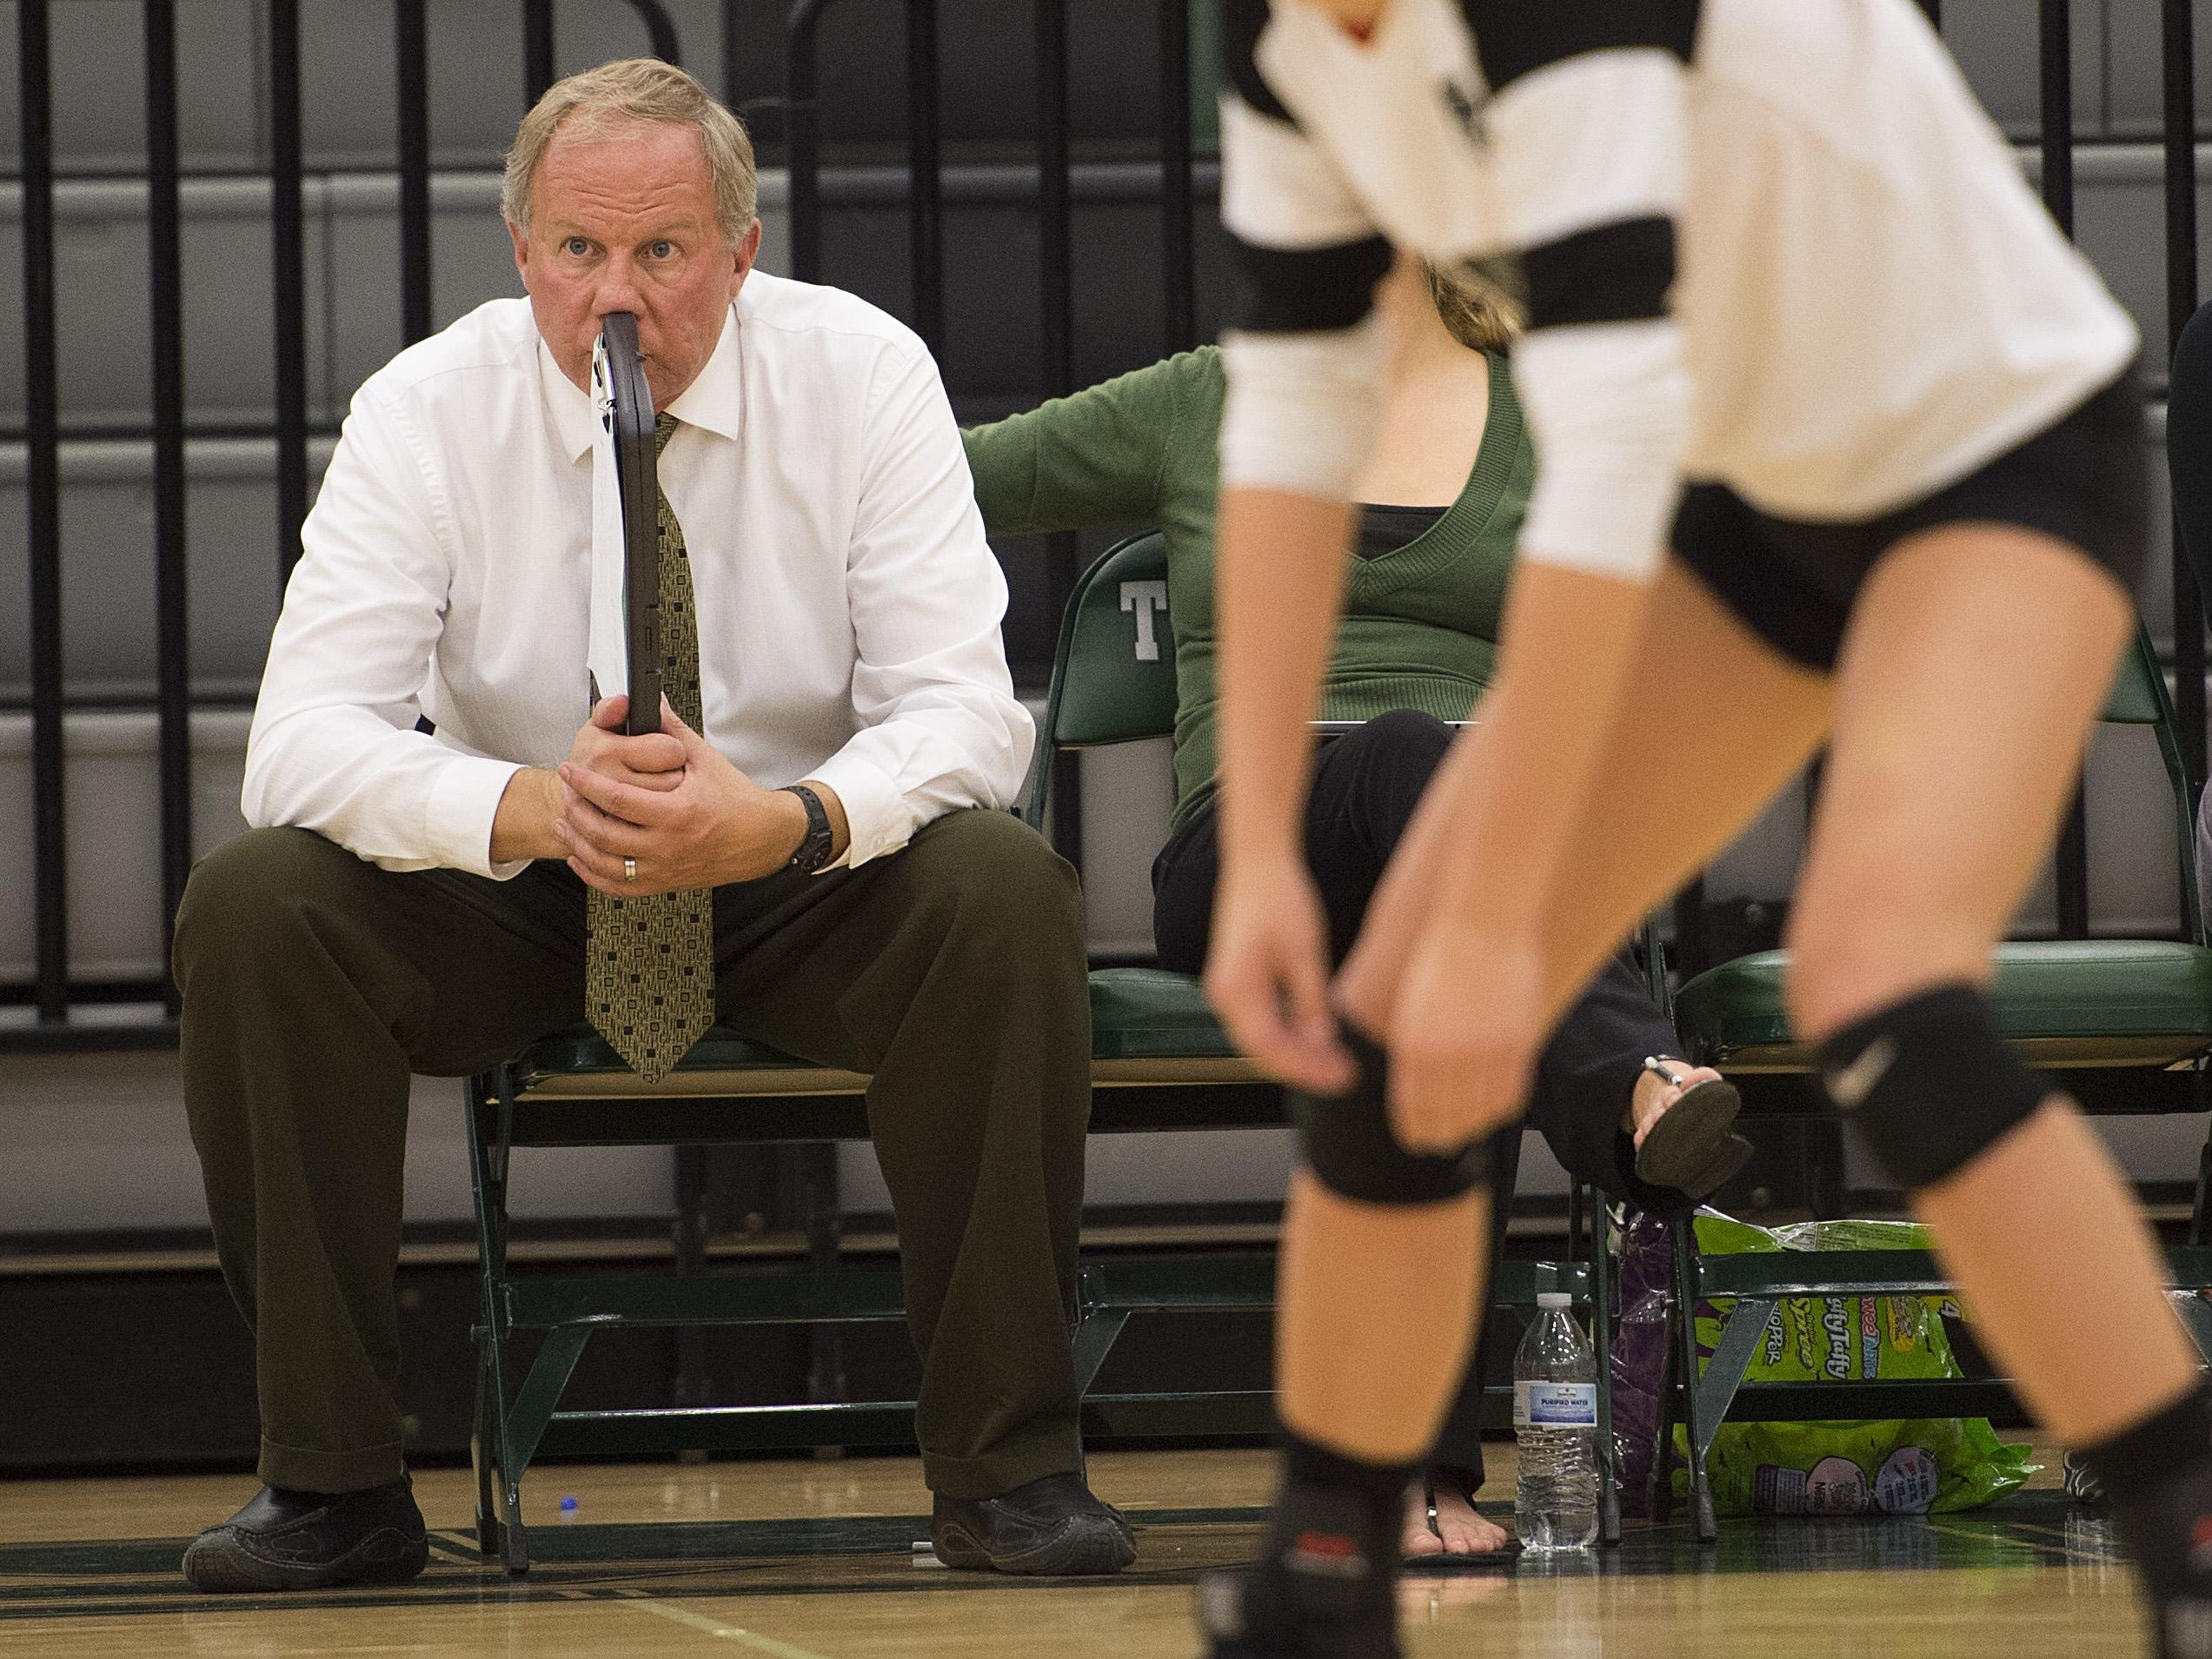 Fossil Ridge volleyball coach Paul Shimek watches his team in a file photo. The SaberCats moved up to No. 2 in the Class 5A volleyball rankings this week.